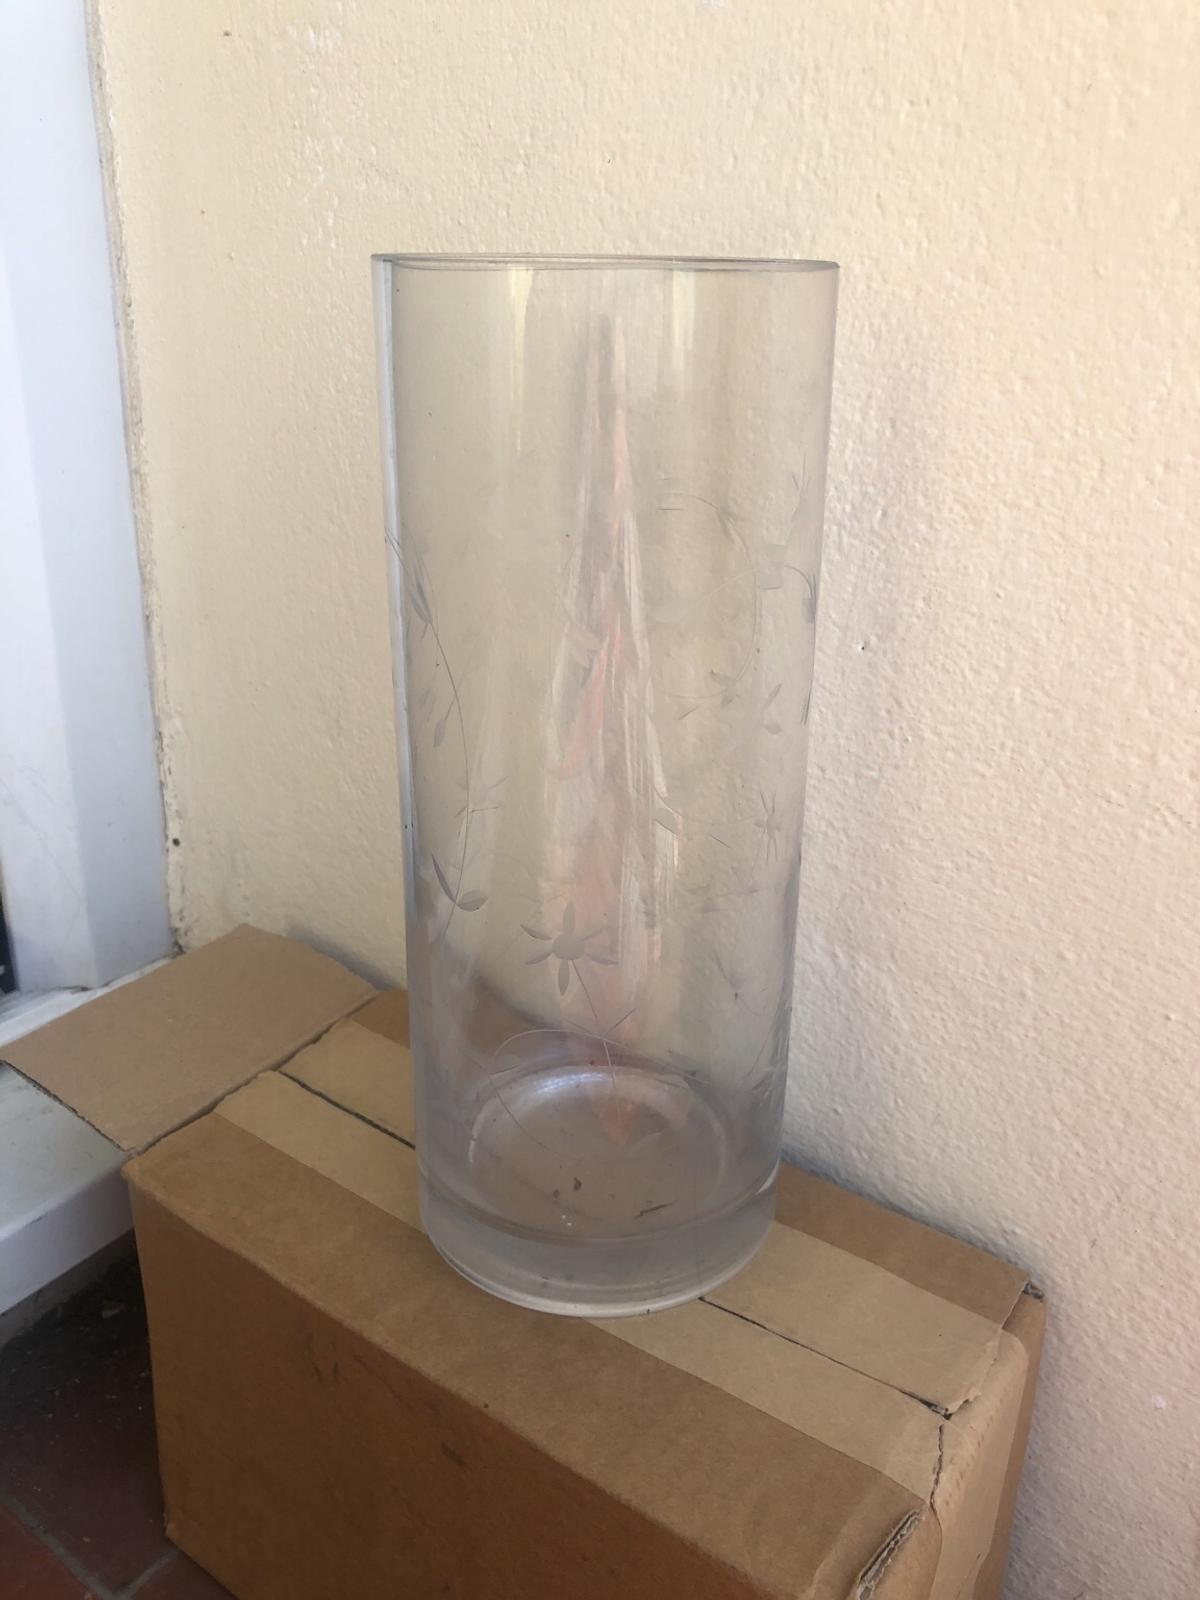 Clear Flower Vase From Ikea In E16 Newham For 5 00 For Sale Shpock